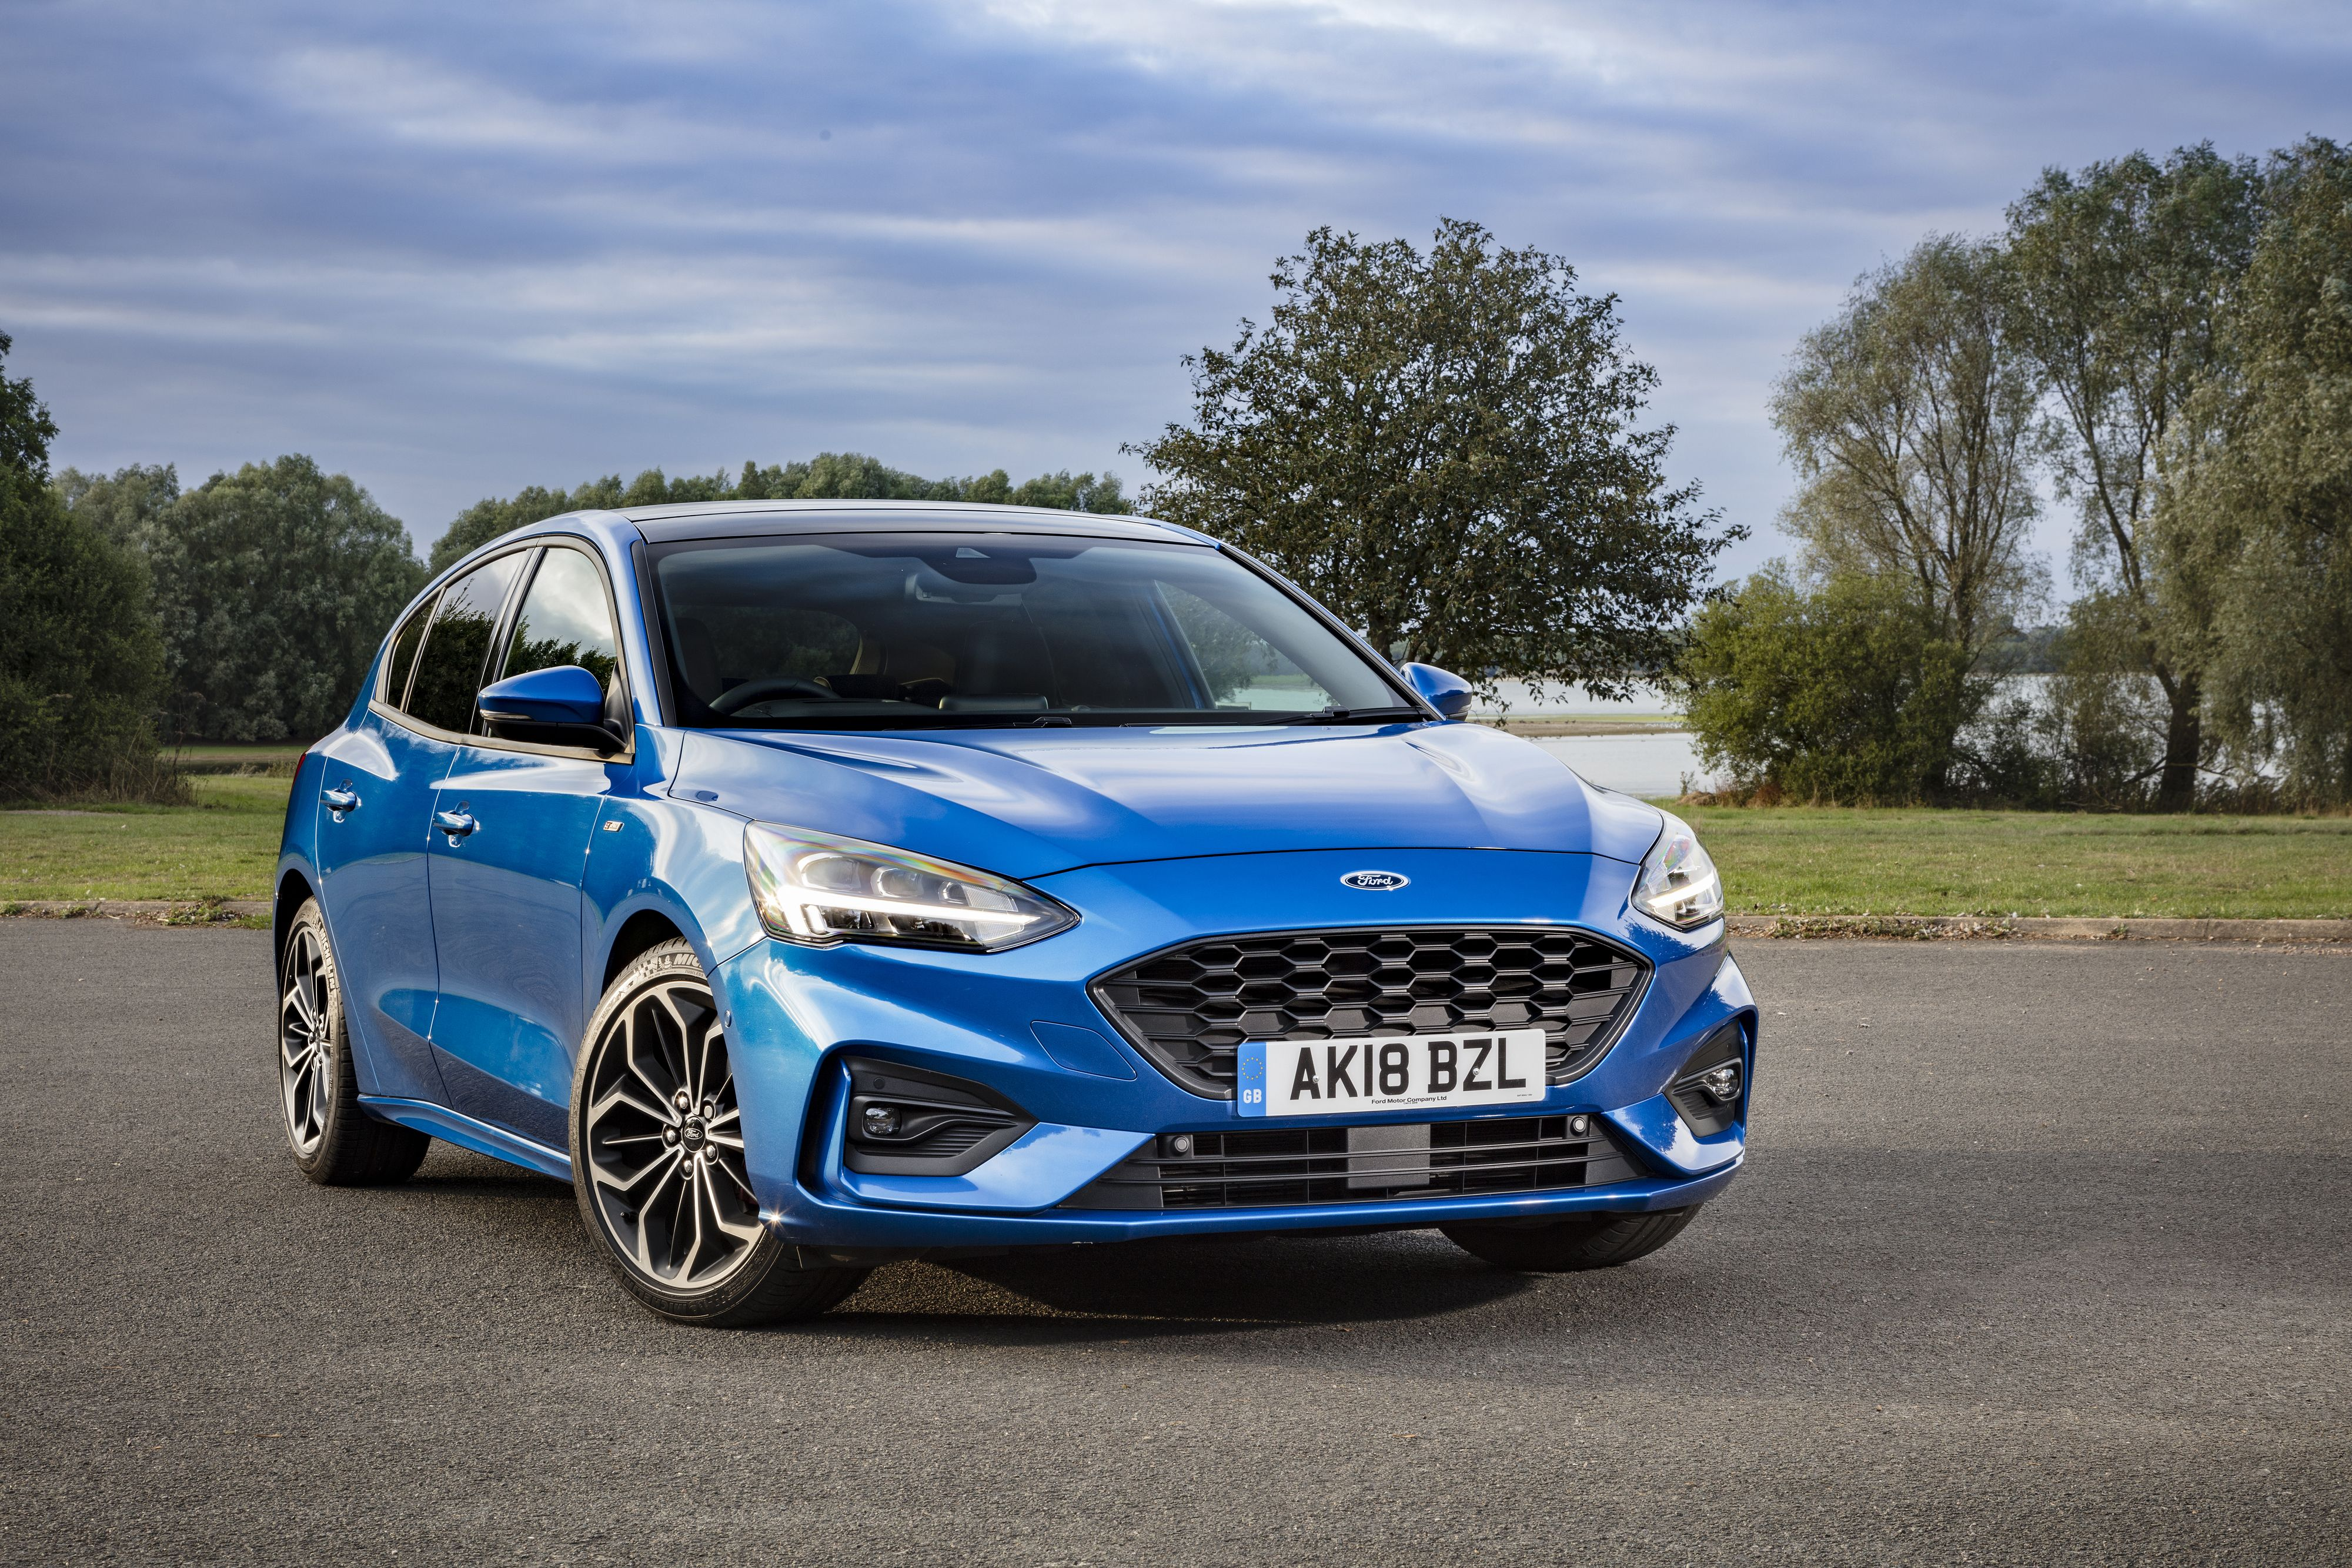 The Ford Focus Was One Of The Uk S Most Popular Cars Of 2019 Search For Yours Now Fordfocus Hatchbacks